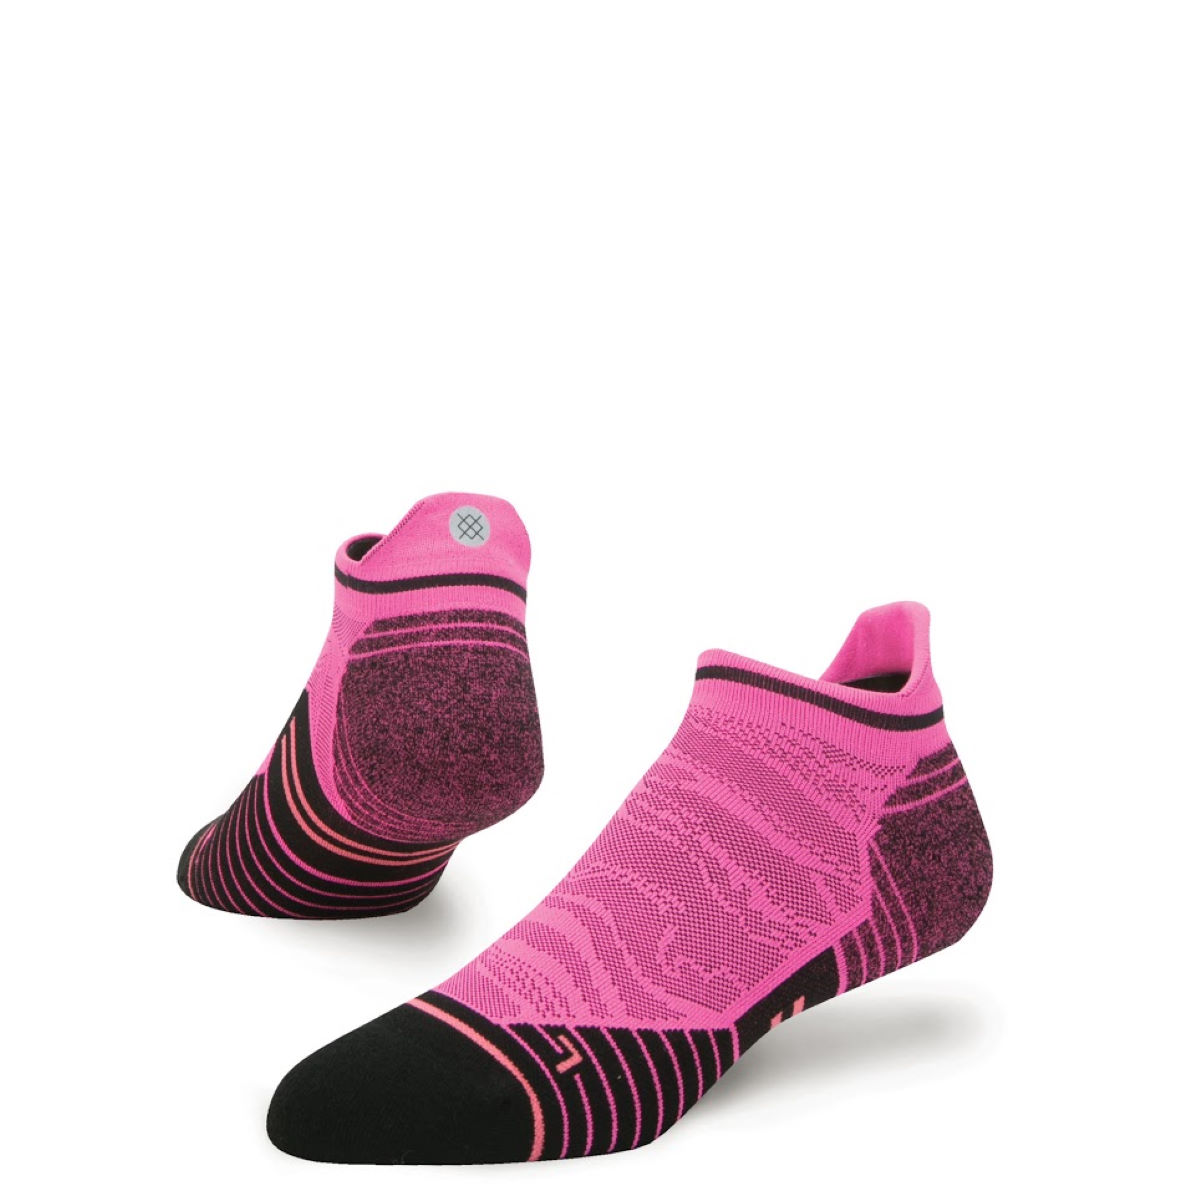 Chaussettes Stance Recovery Tab (basses) - S Rose